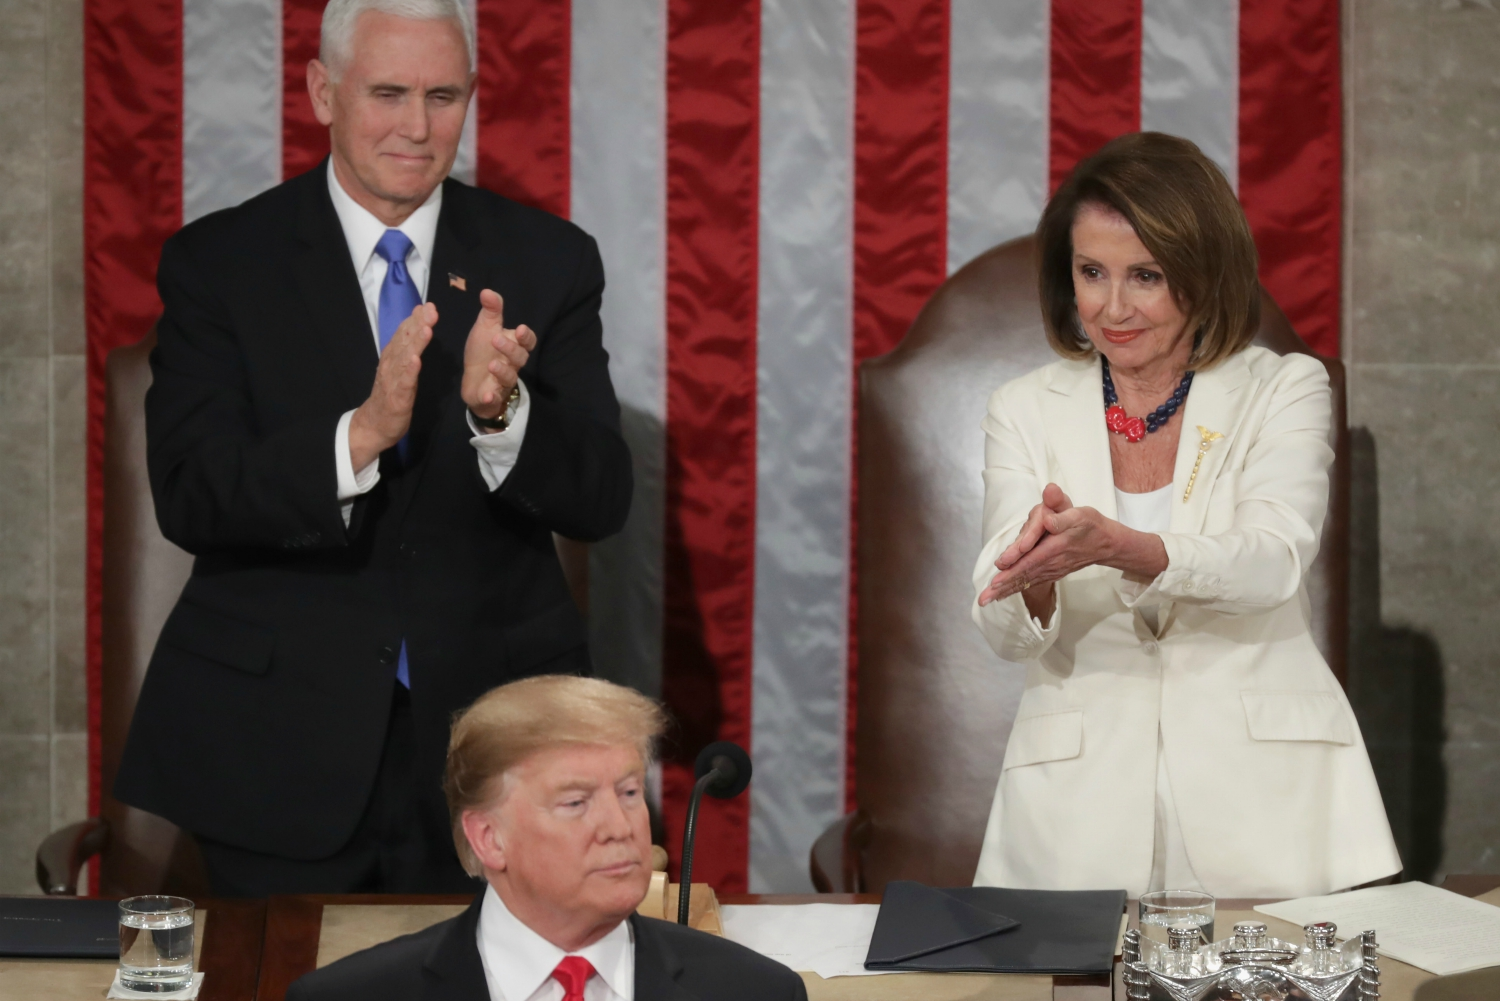 Nancy Pelosi Has Donald Trump by the Balls (In a Manner of Speaking)